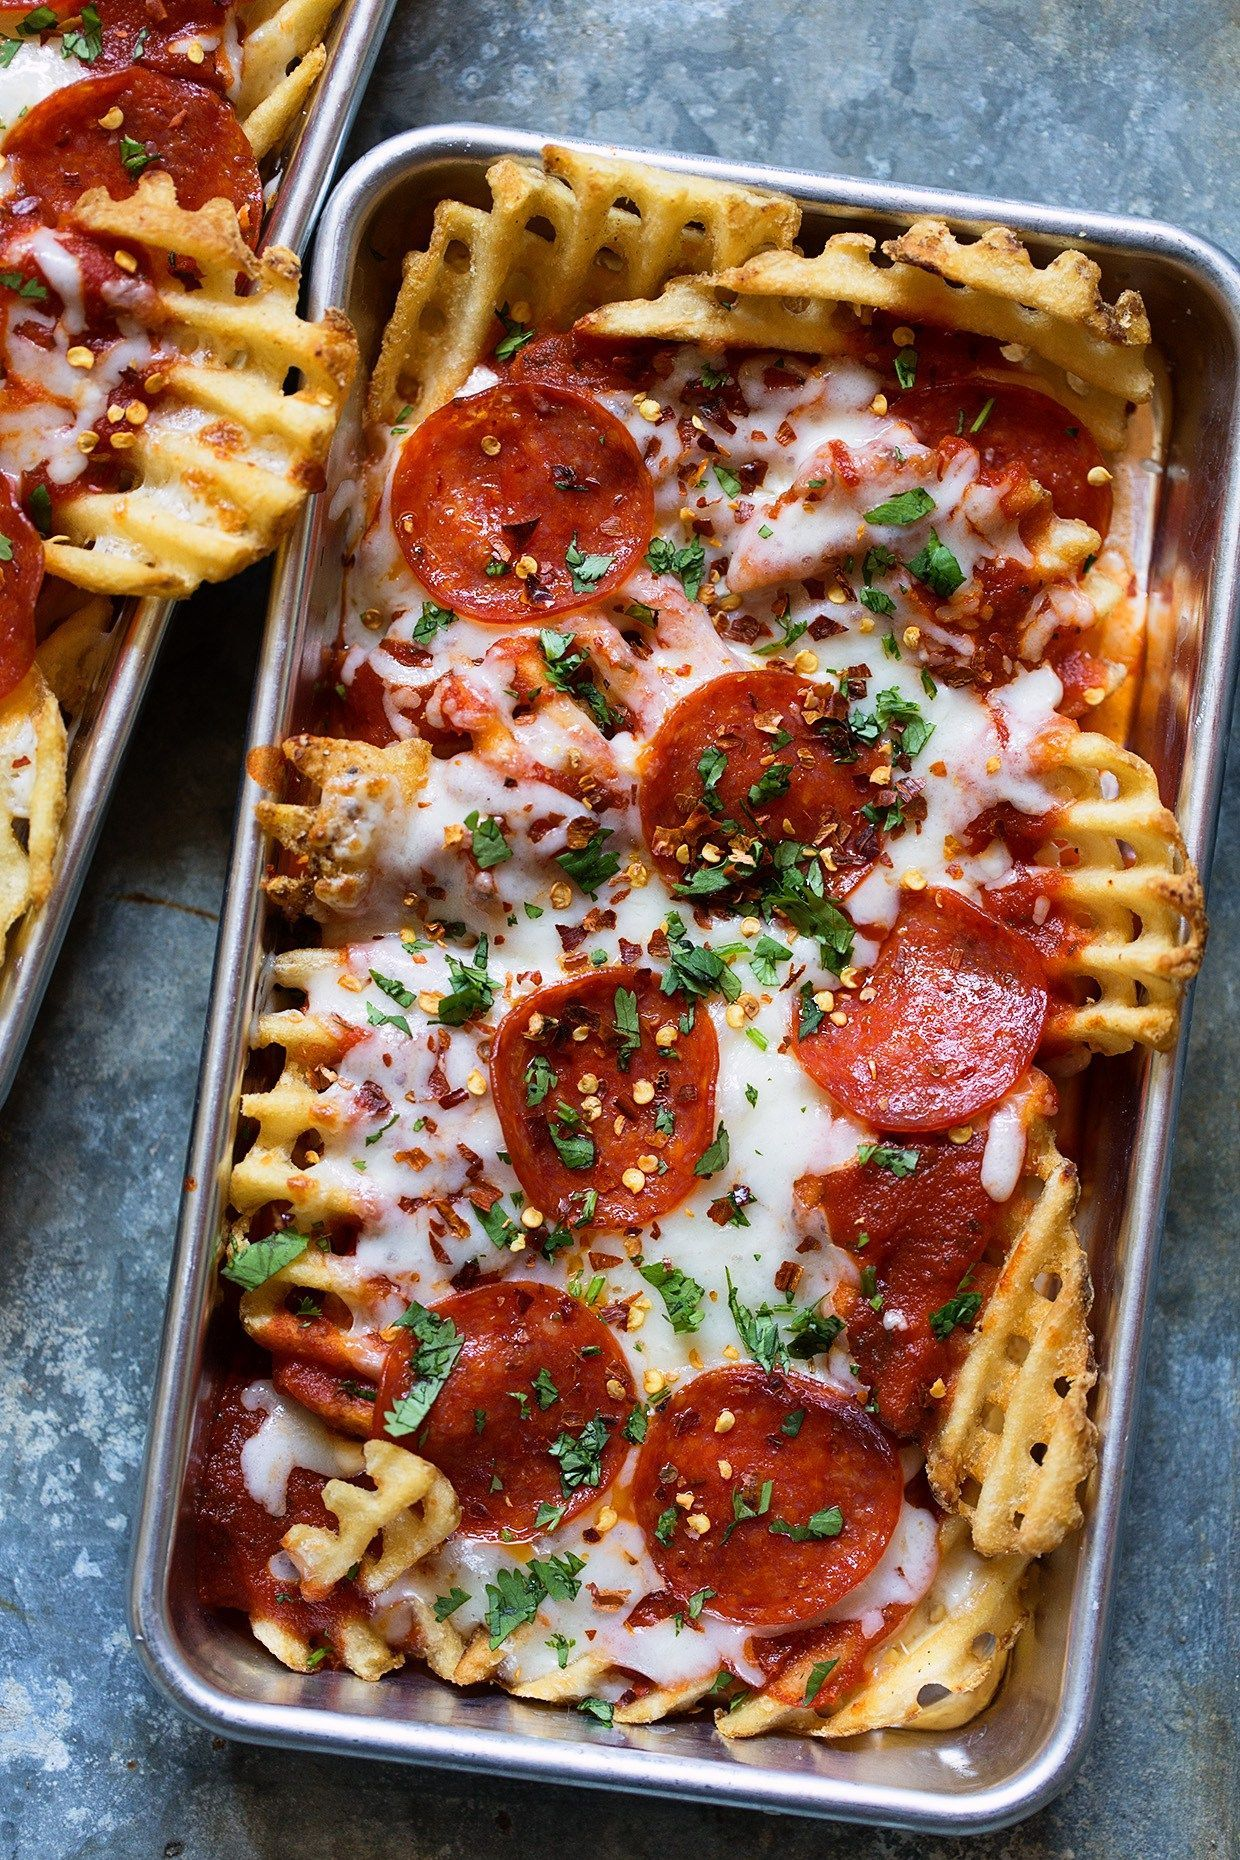 Waffle Fries Are a Glorious Sight to Behold Pizza Waffle Fries Are a Glorious Sight to Behold — Delicious LinksPizza Waffle Fries Are a Glorious Sight to Behold — Delicious Links